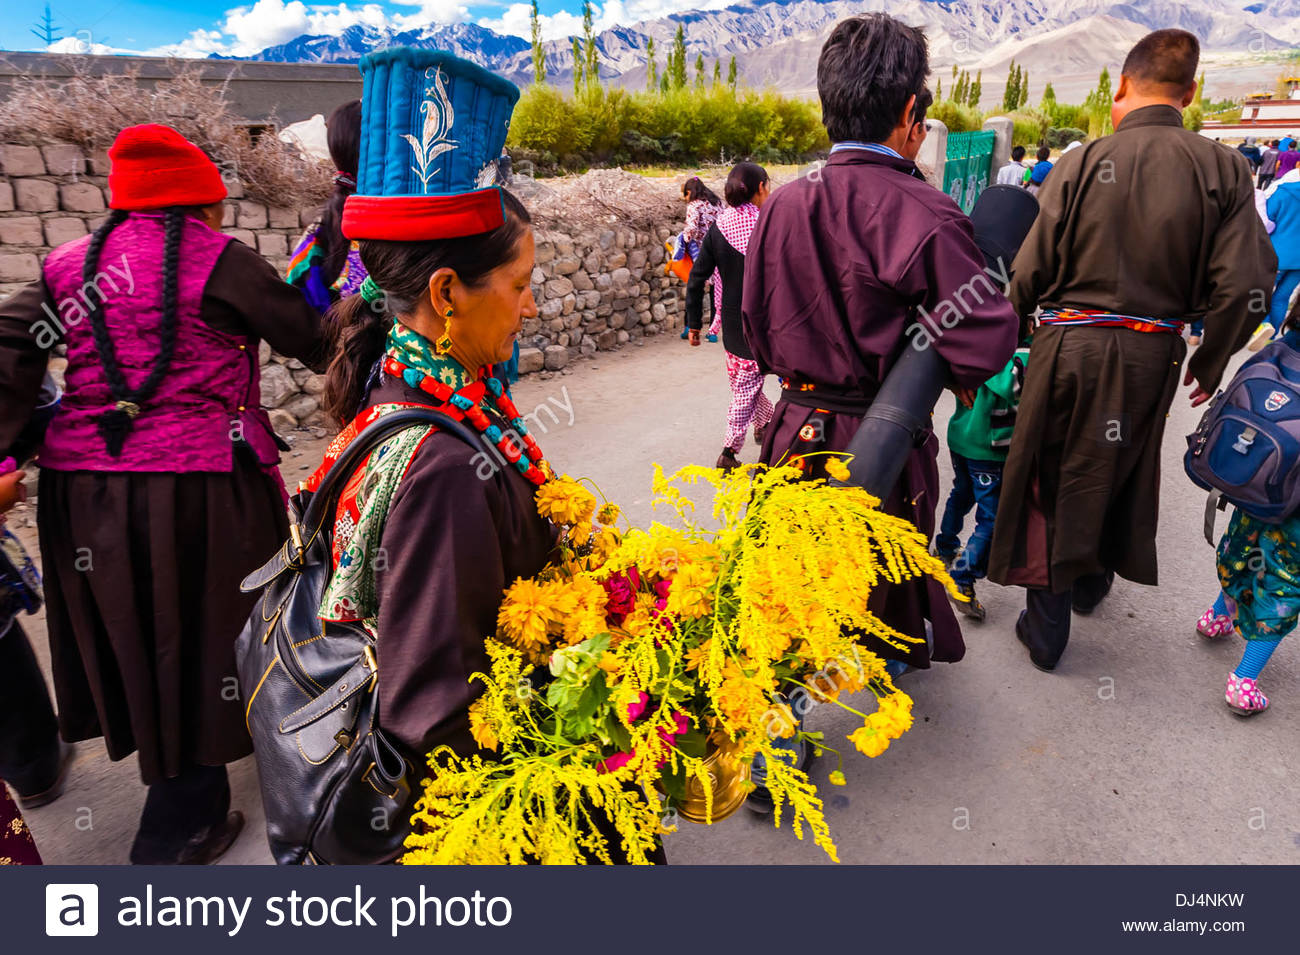 Buddhists walking to attend a teaching by His Holiness the 14th Dalai Lama at Choglamsar, Ladakh, Jammu and Kashmir State, India. - Stock Image